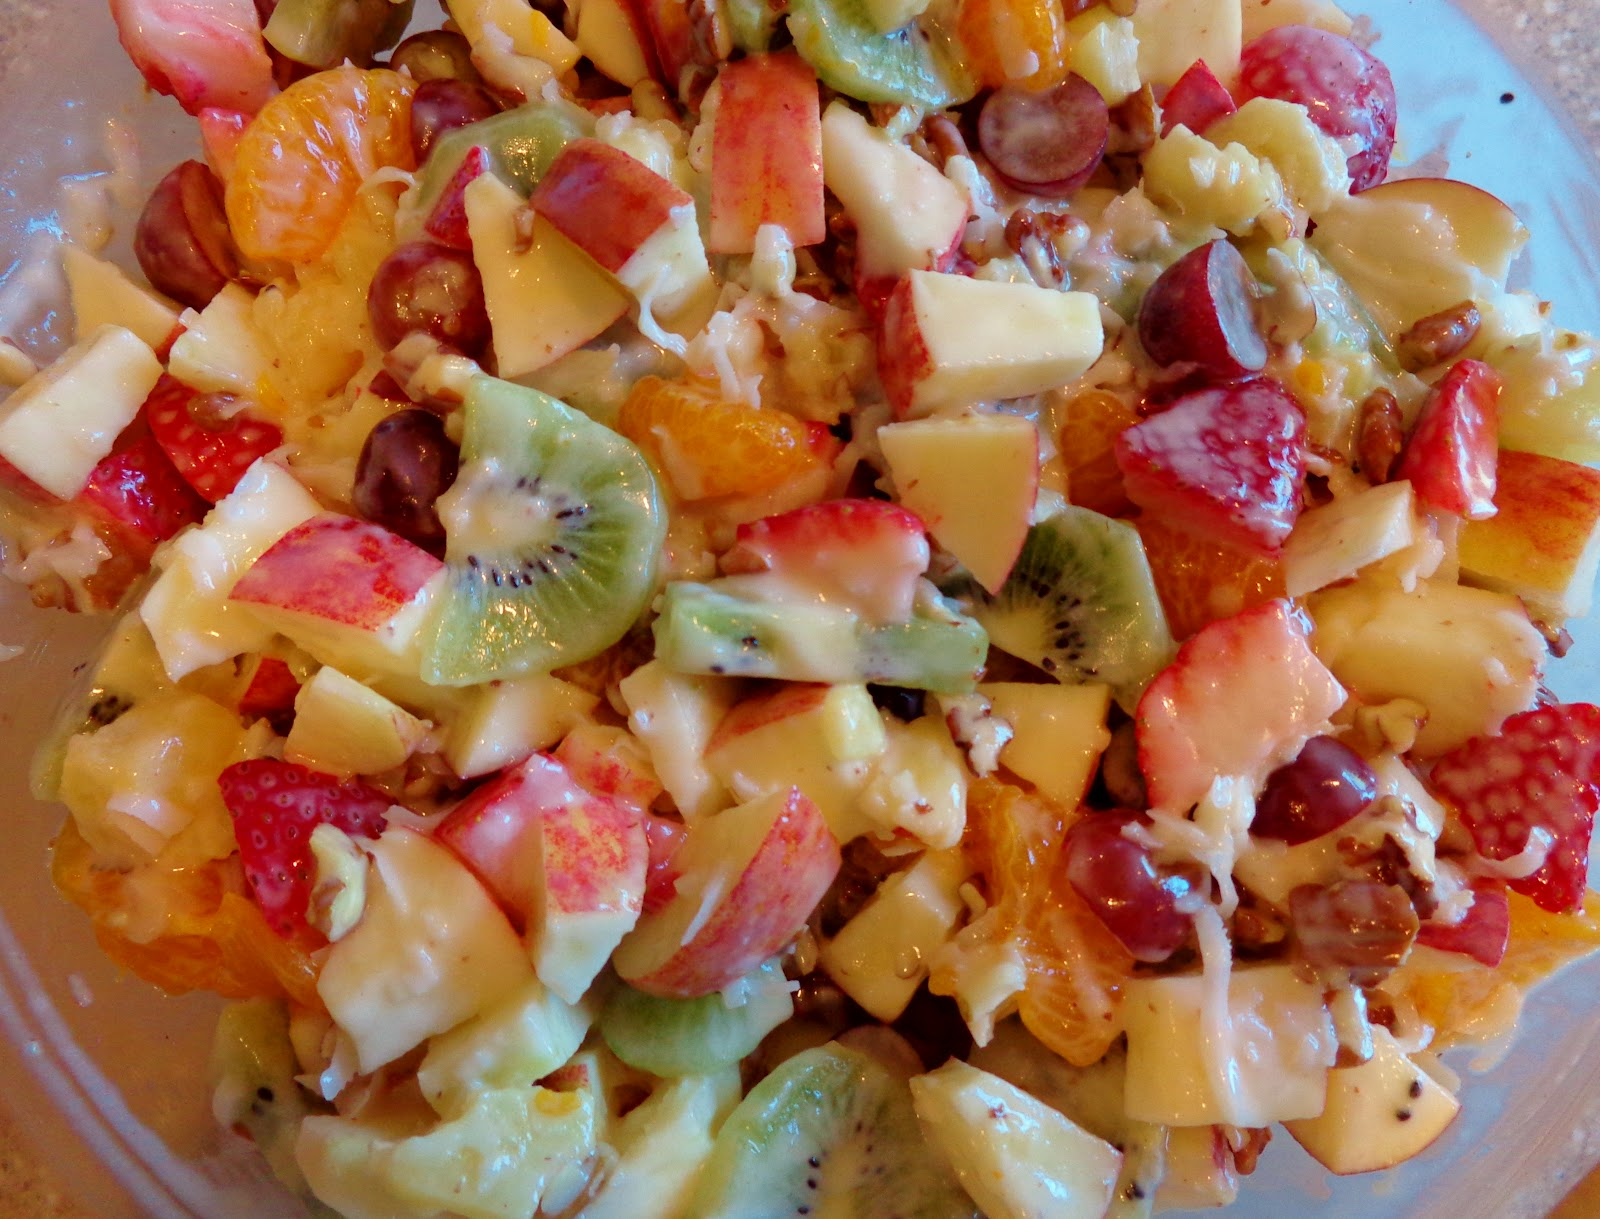 Eatin' Vegan in Smalltown, USA: Creamy Tropical Fruit Salad~pg. 86